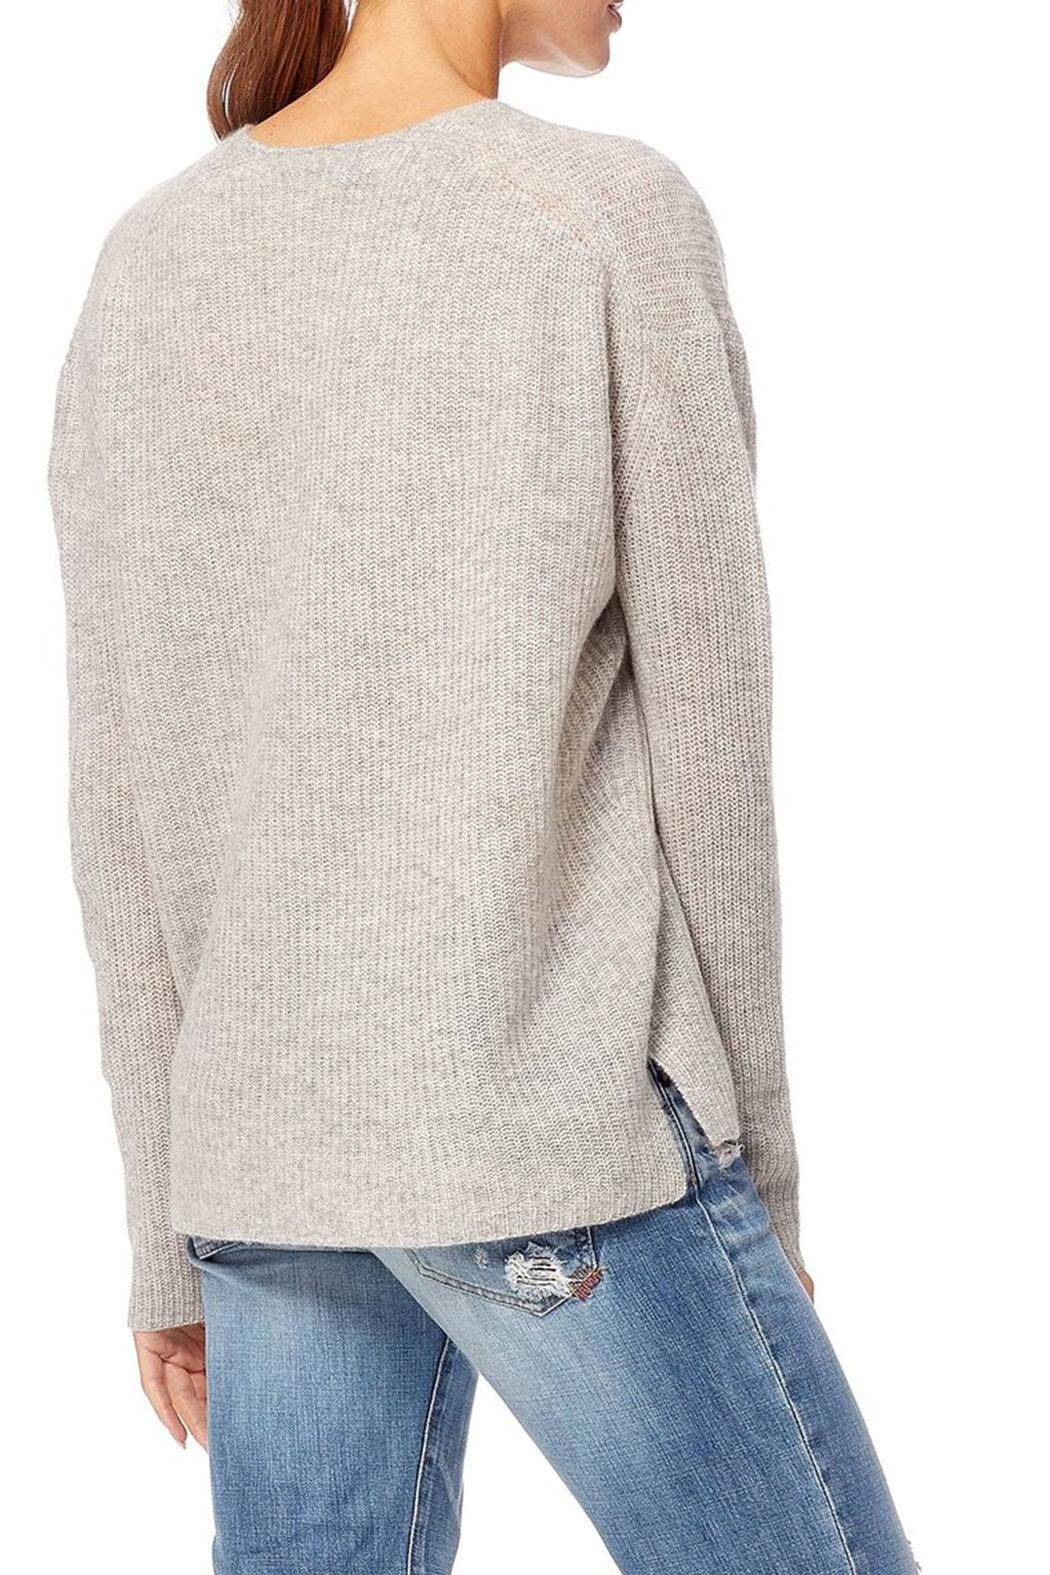 360 Cashmere Mai Cashmere Sweater - Front Full Image